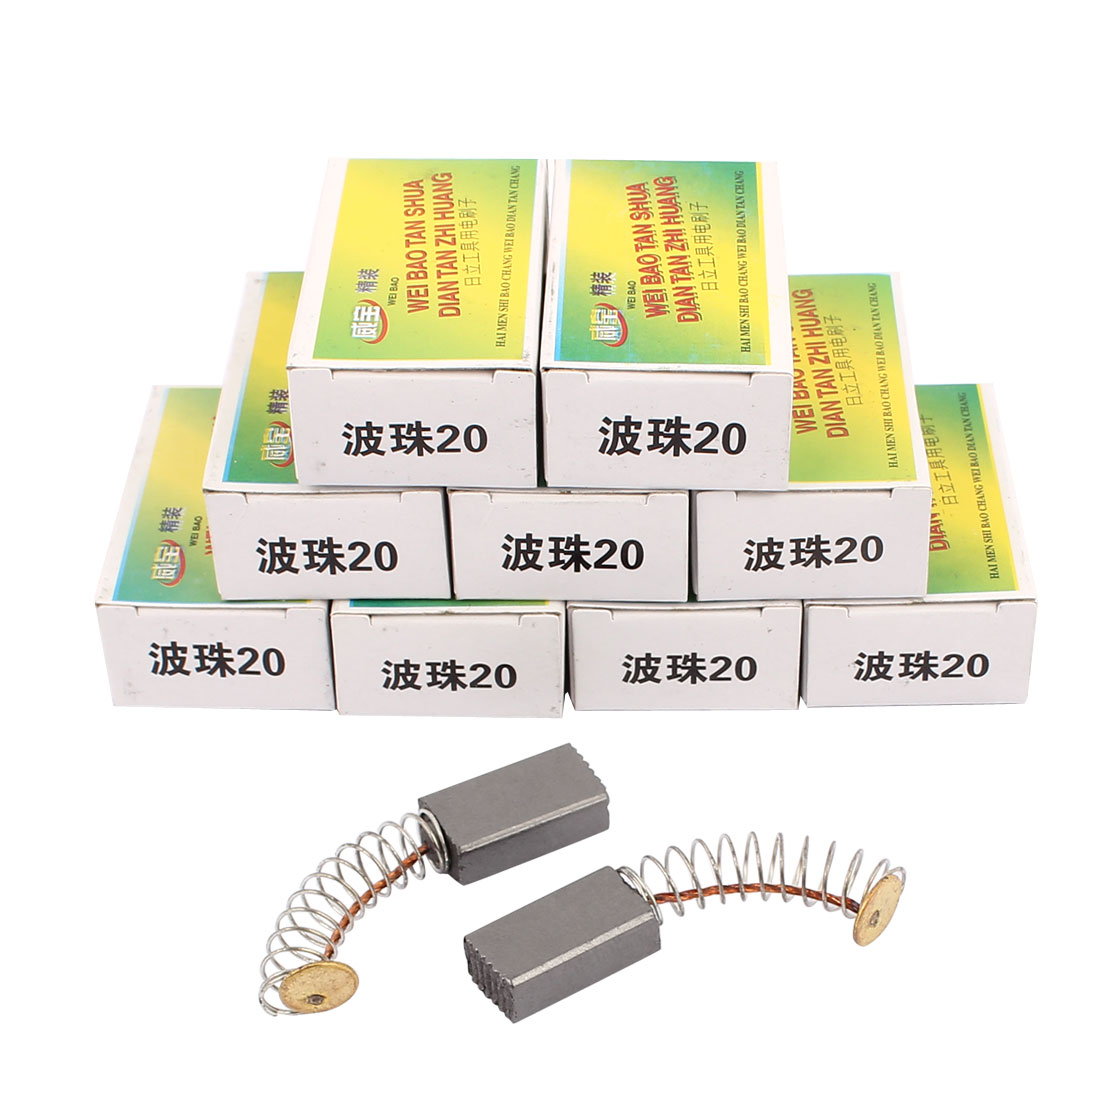 10 Pairs Replacement Carbon Brushes 14mm x 8mm x 5mm for Electric Motor - image 2 of 2